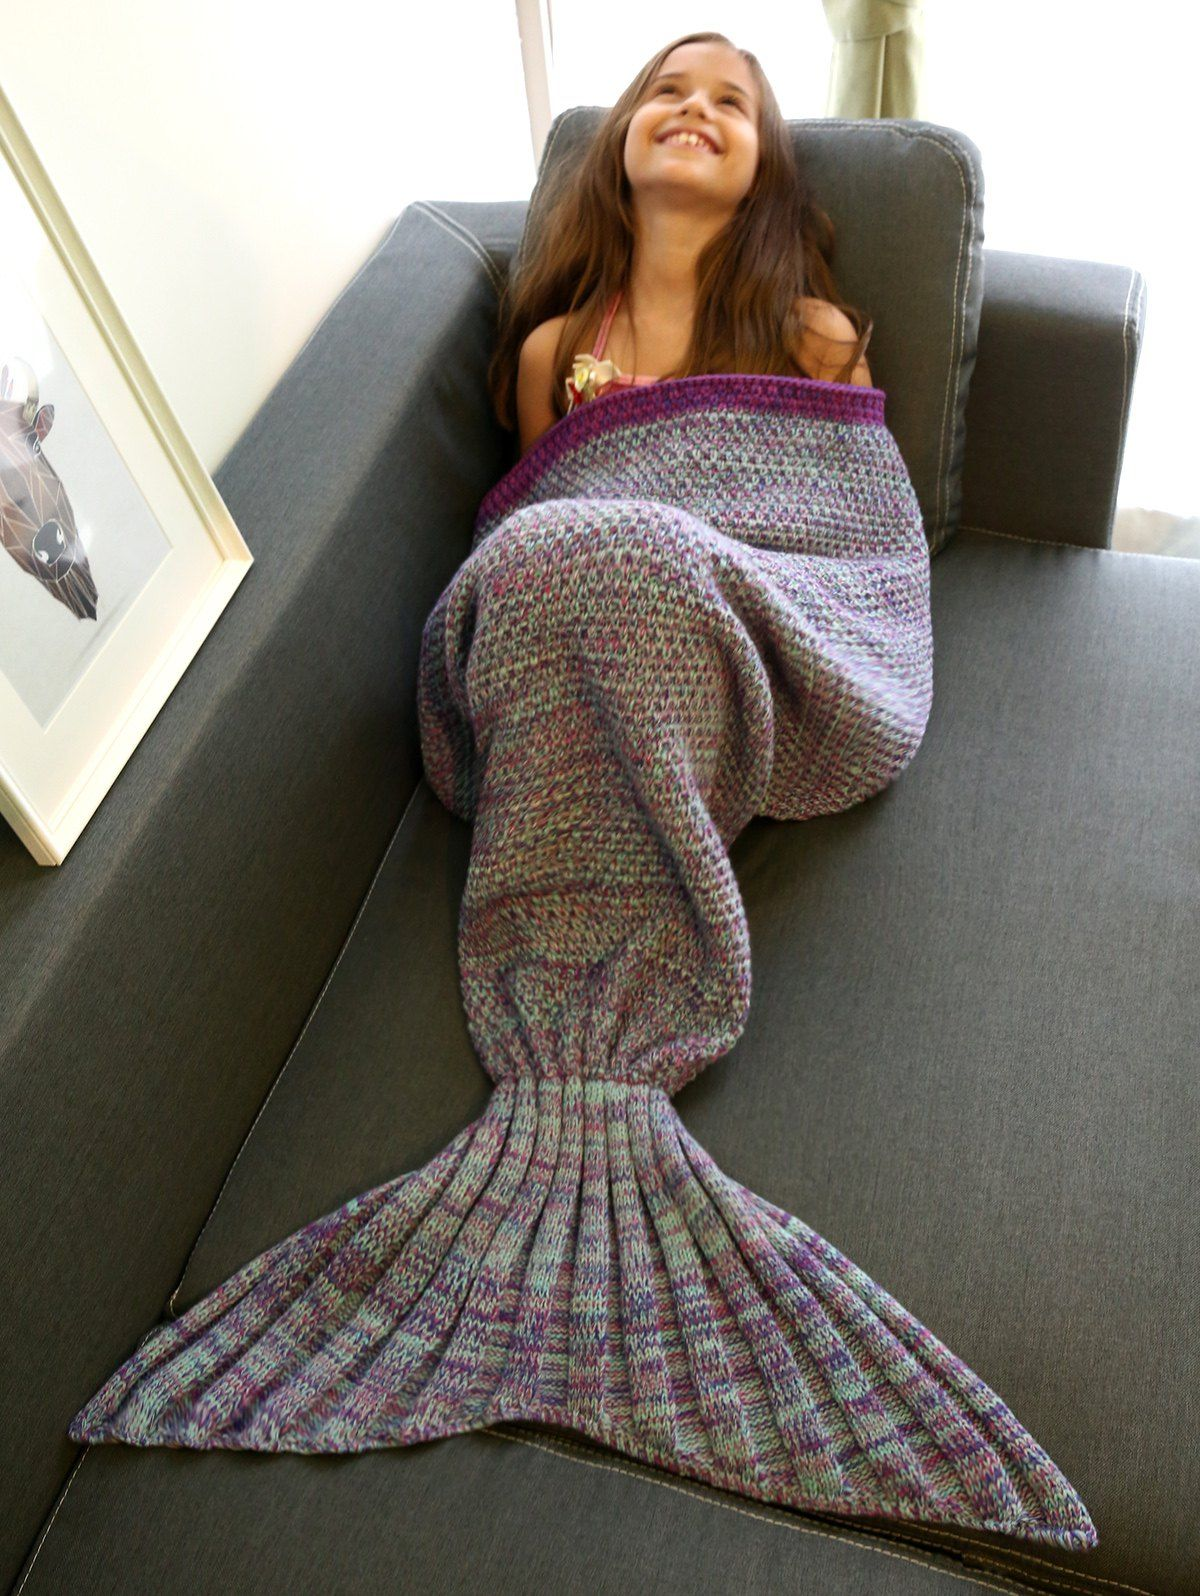 | Black Friday Sale: Extra 15% OFF Using Code SAMMY2016 | Super Soft Multi-Colored Knitted Mermaid Tail Design Blanket For Kid in Colormix | Sammydress.com